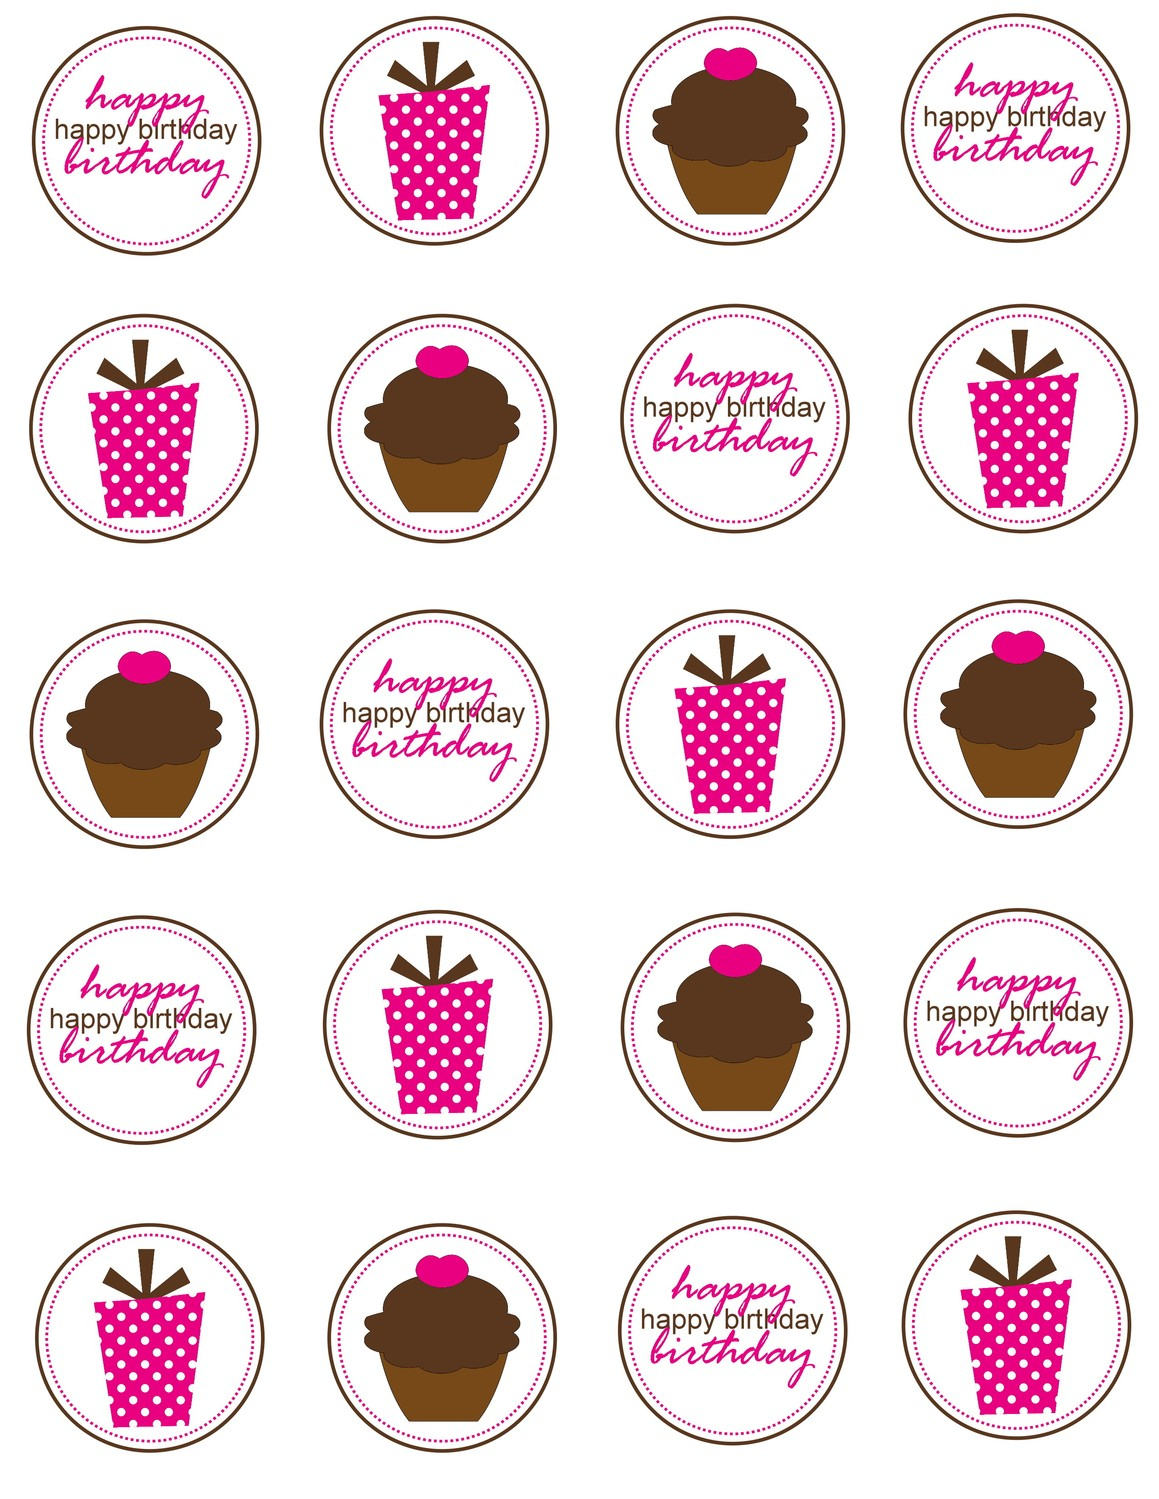 8 Cupcakes Ring Toppers Printables Photo - Diamond Ring Drink Tags - Cupcake Topper Templates Free Printable